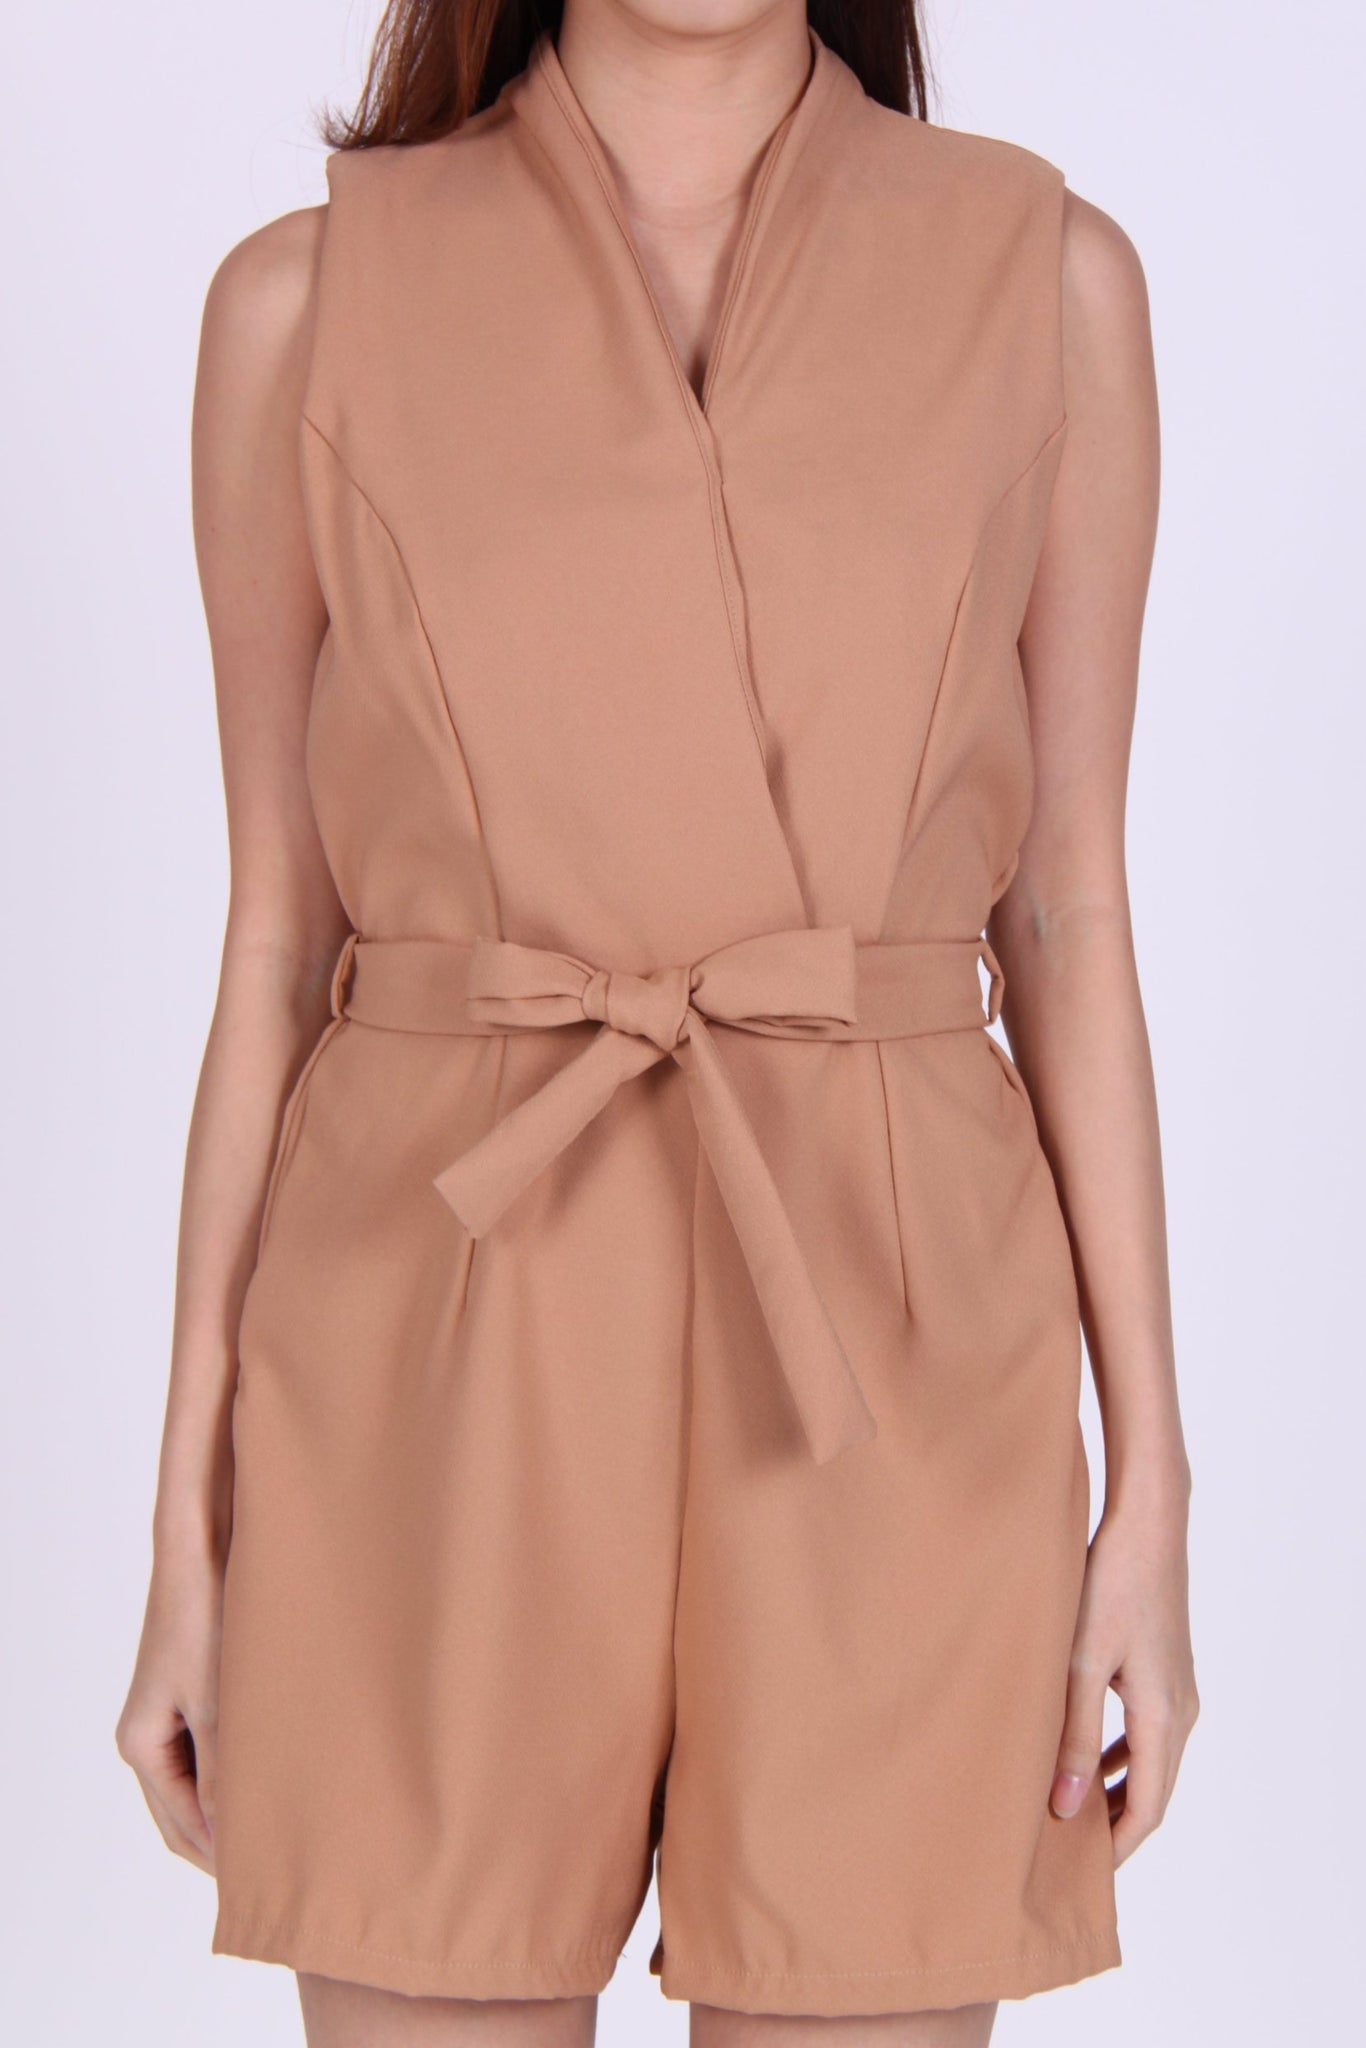 Overlap Sleeveless Romper in Beige